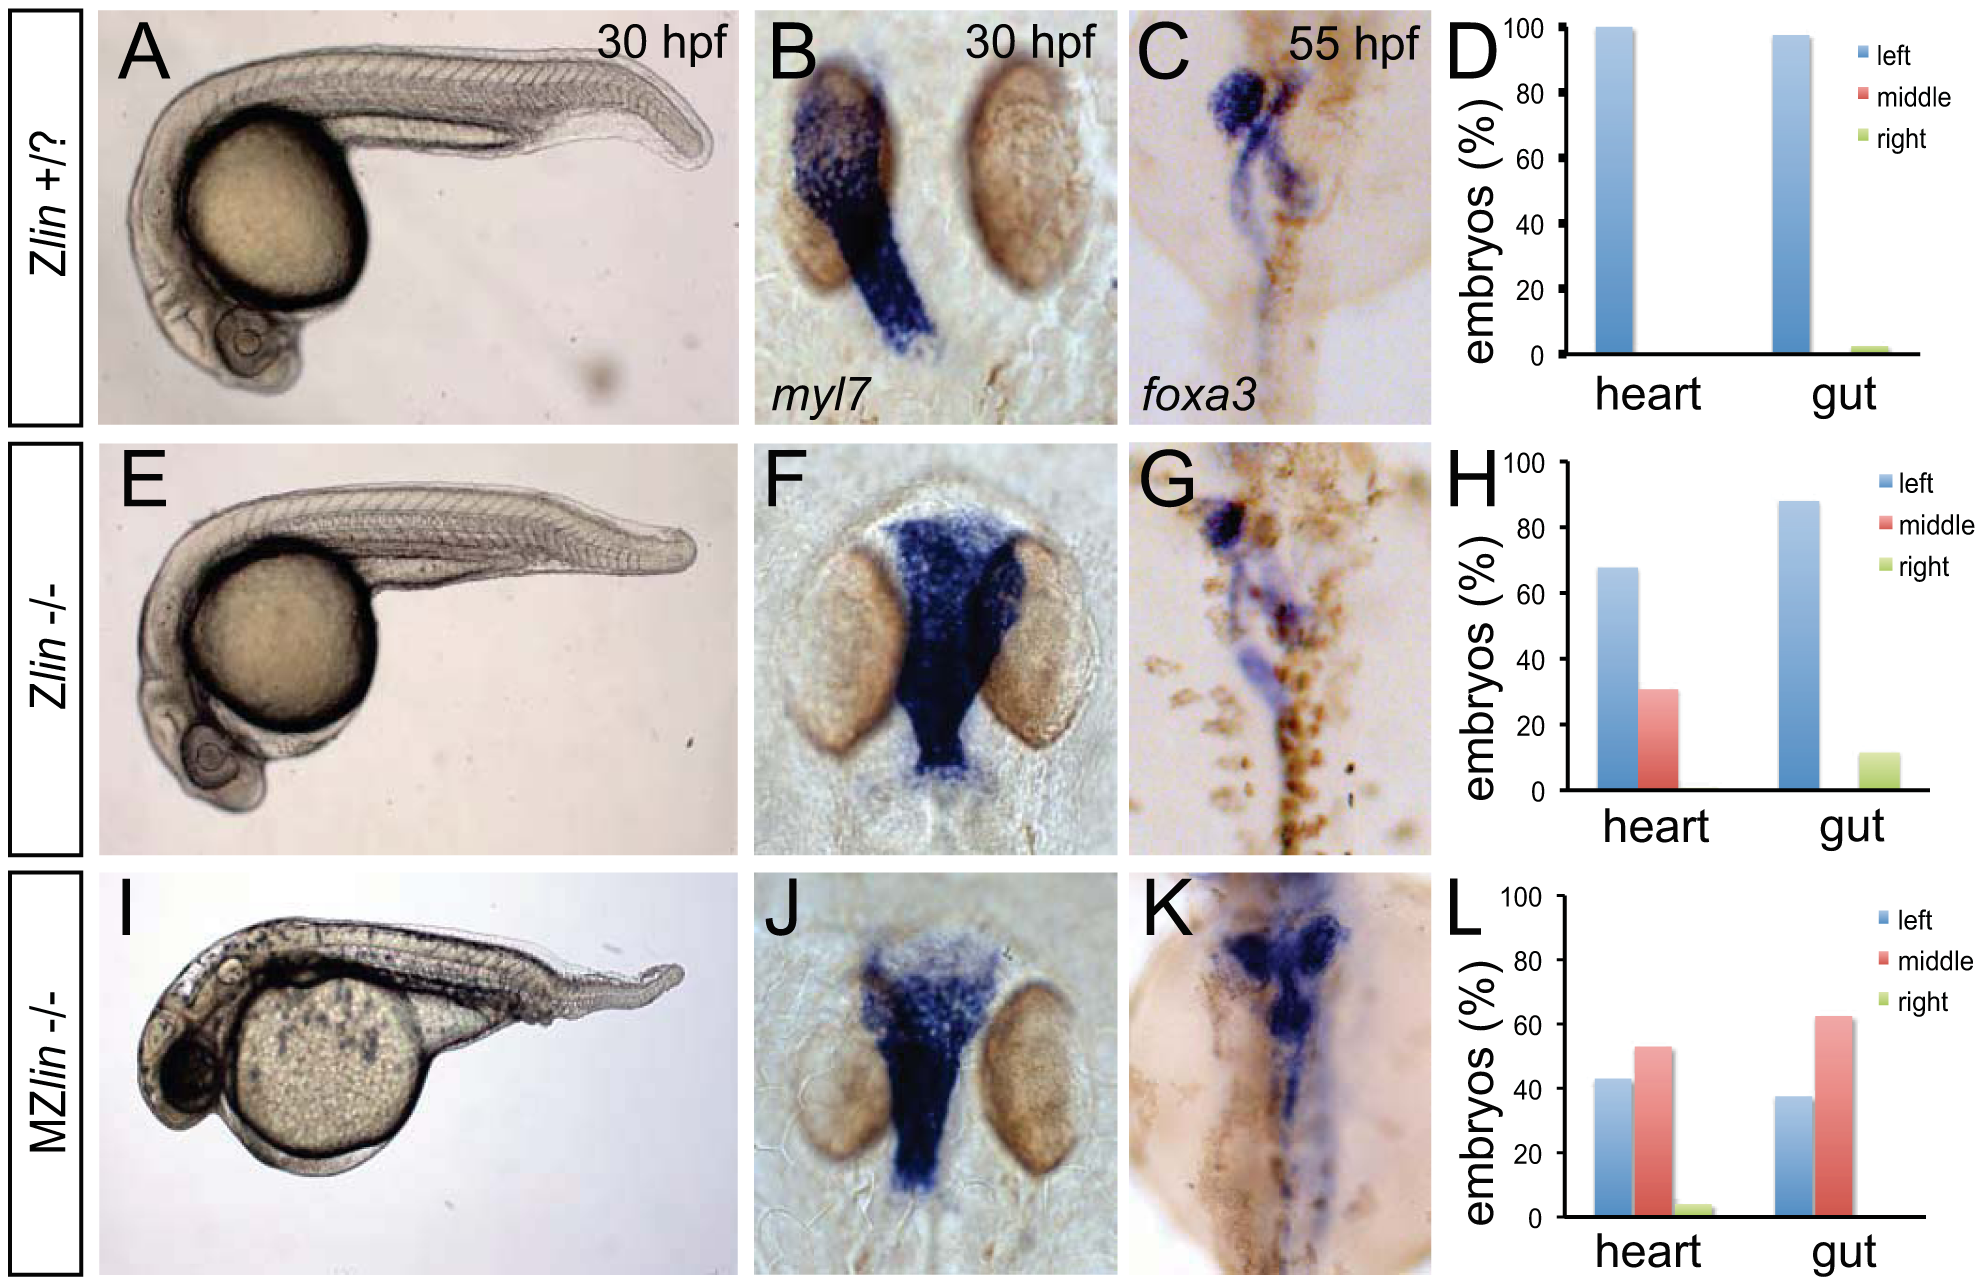 Dorsoventral and laterality defects in zygotic and maternal zygotic <i>lin</i> mutant embryos.